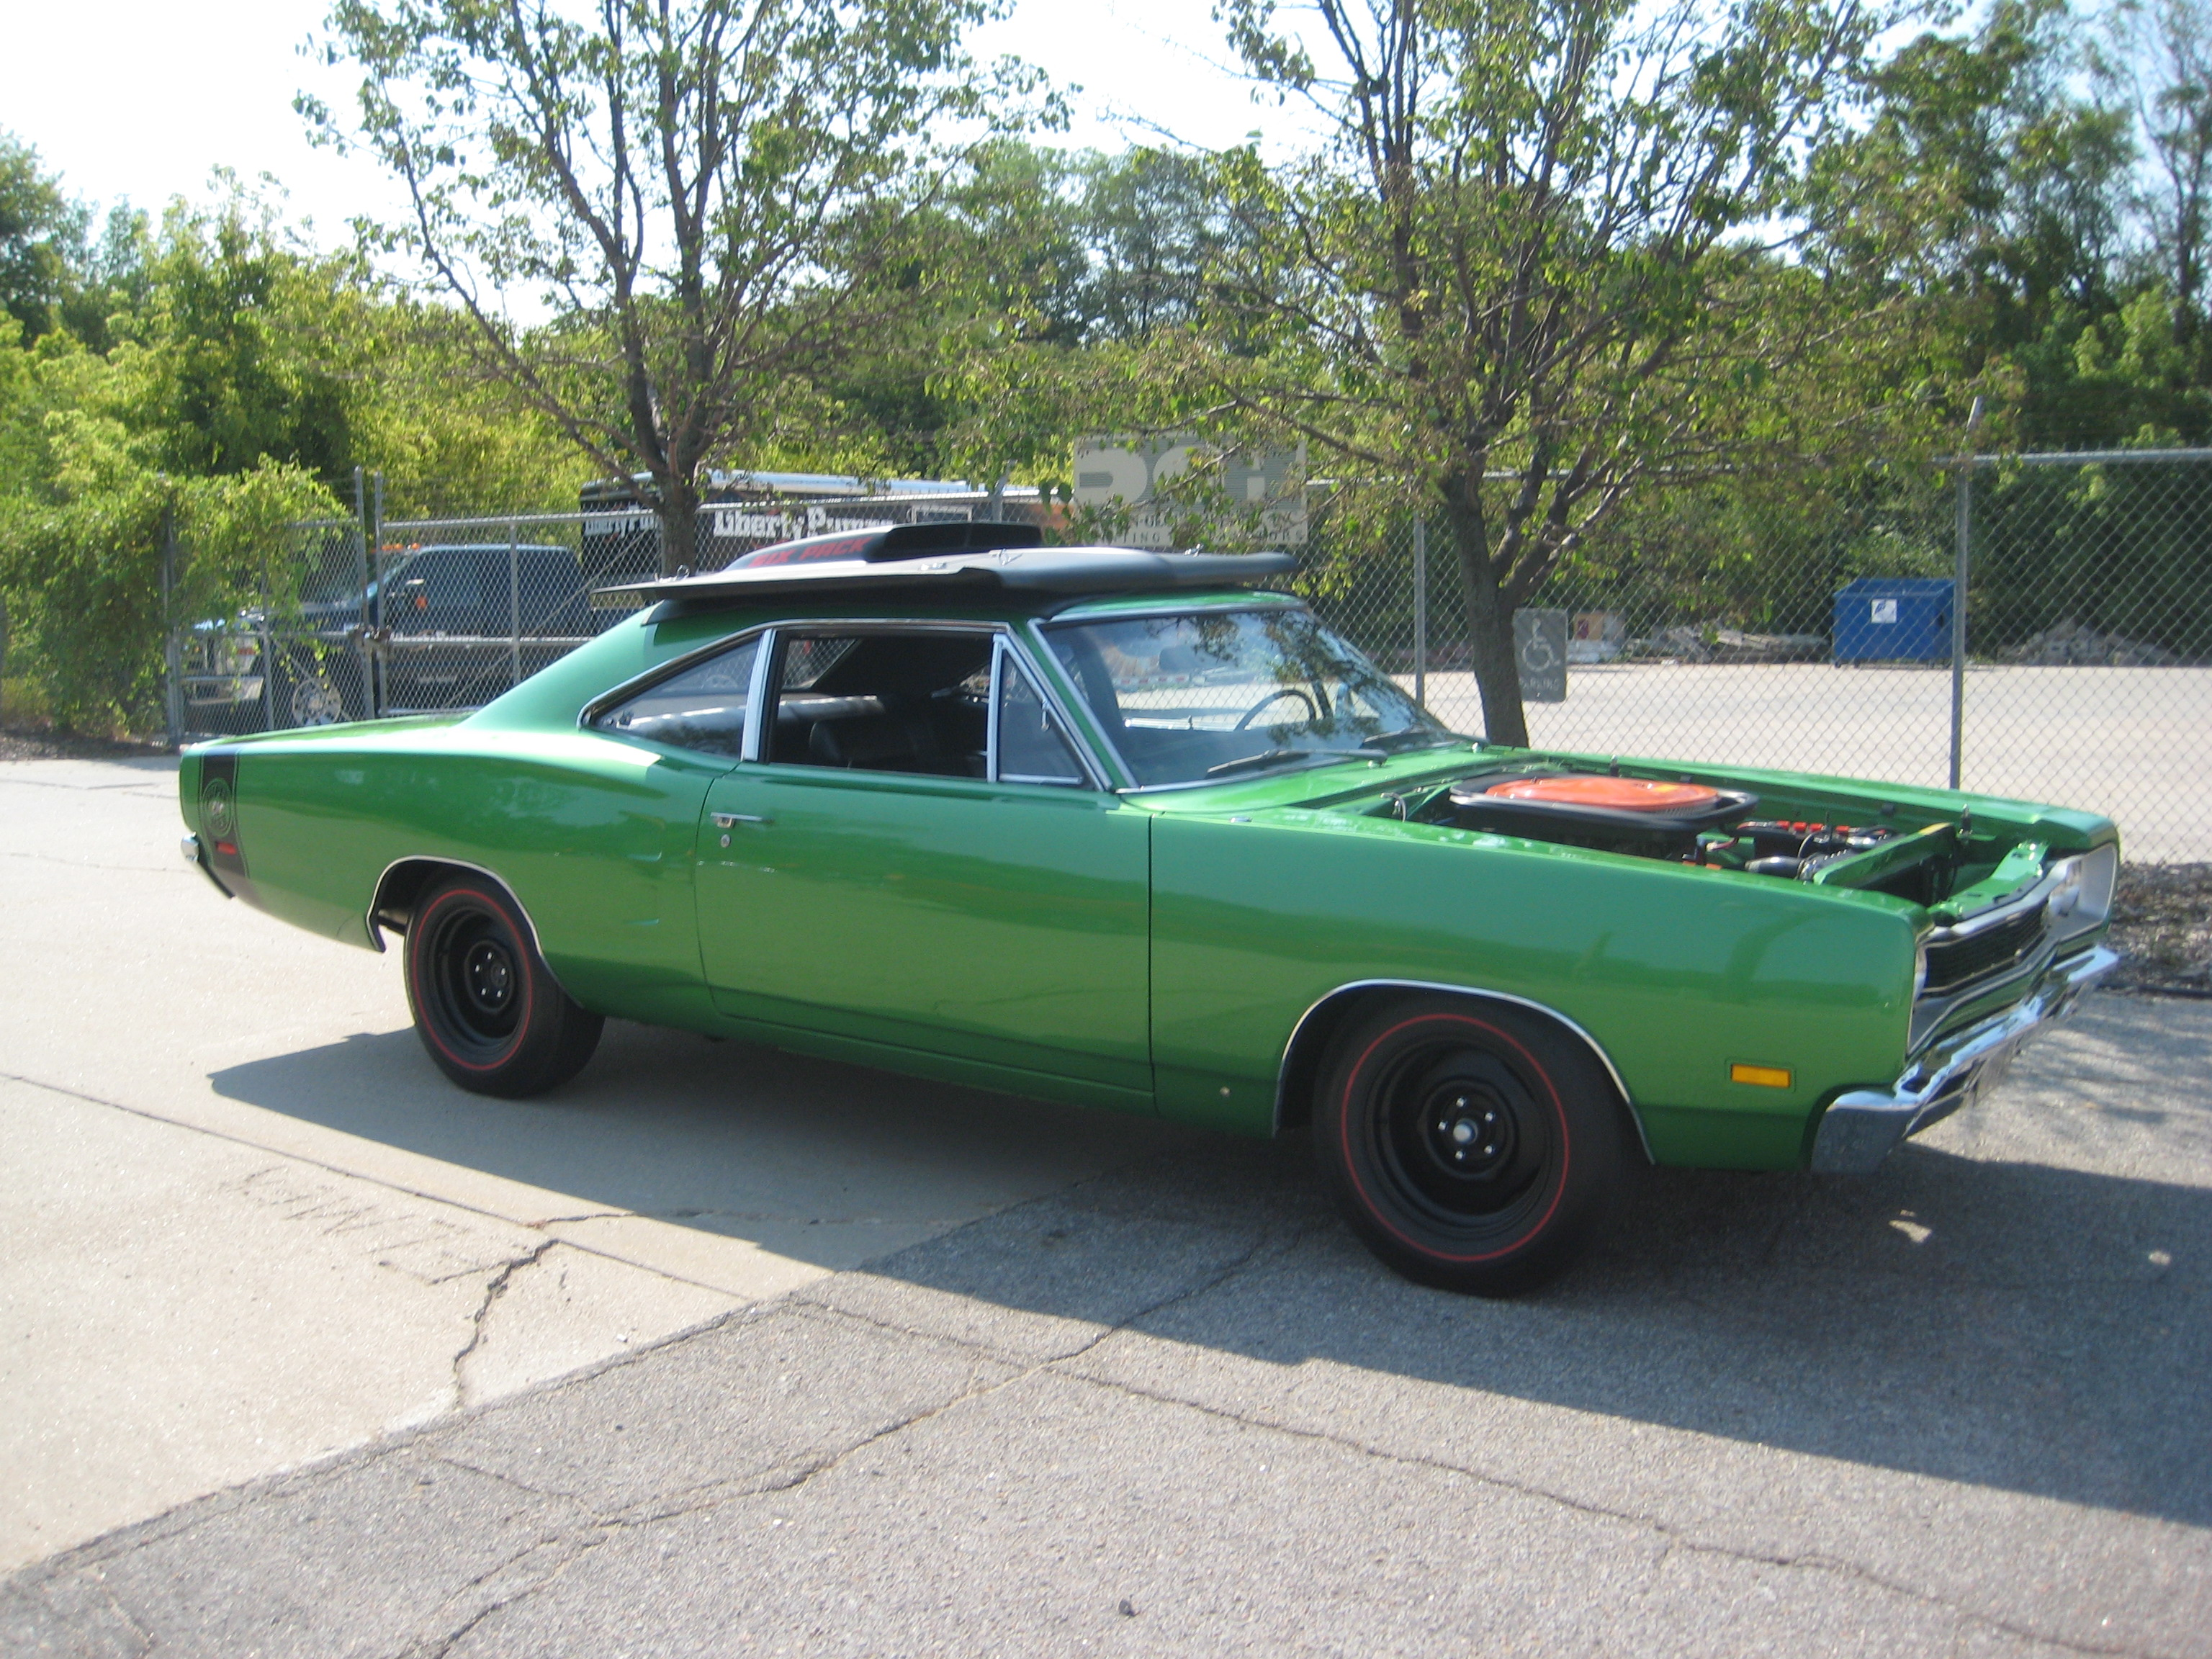 73 1969 1 2 Superbee 12 Dodge Super Bee A12 Coronet Here Is An Example Of A Nearly Factory Race Car The These